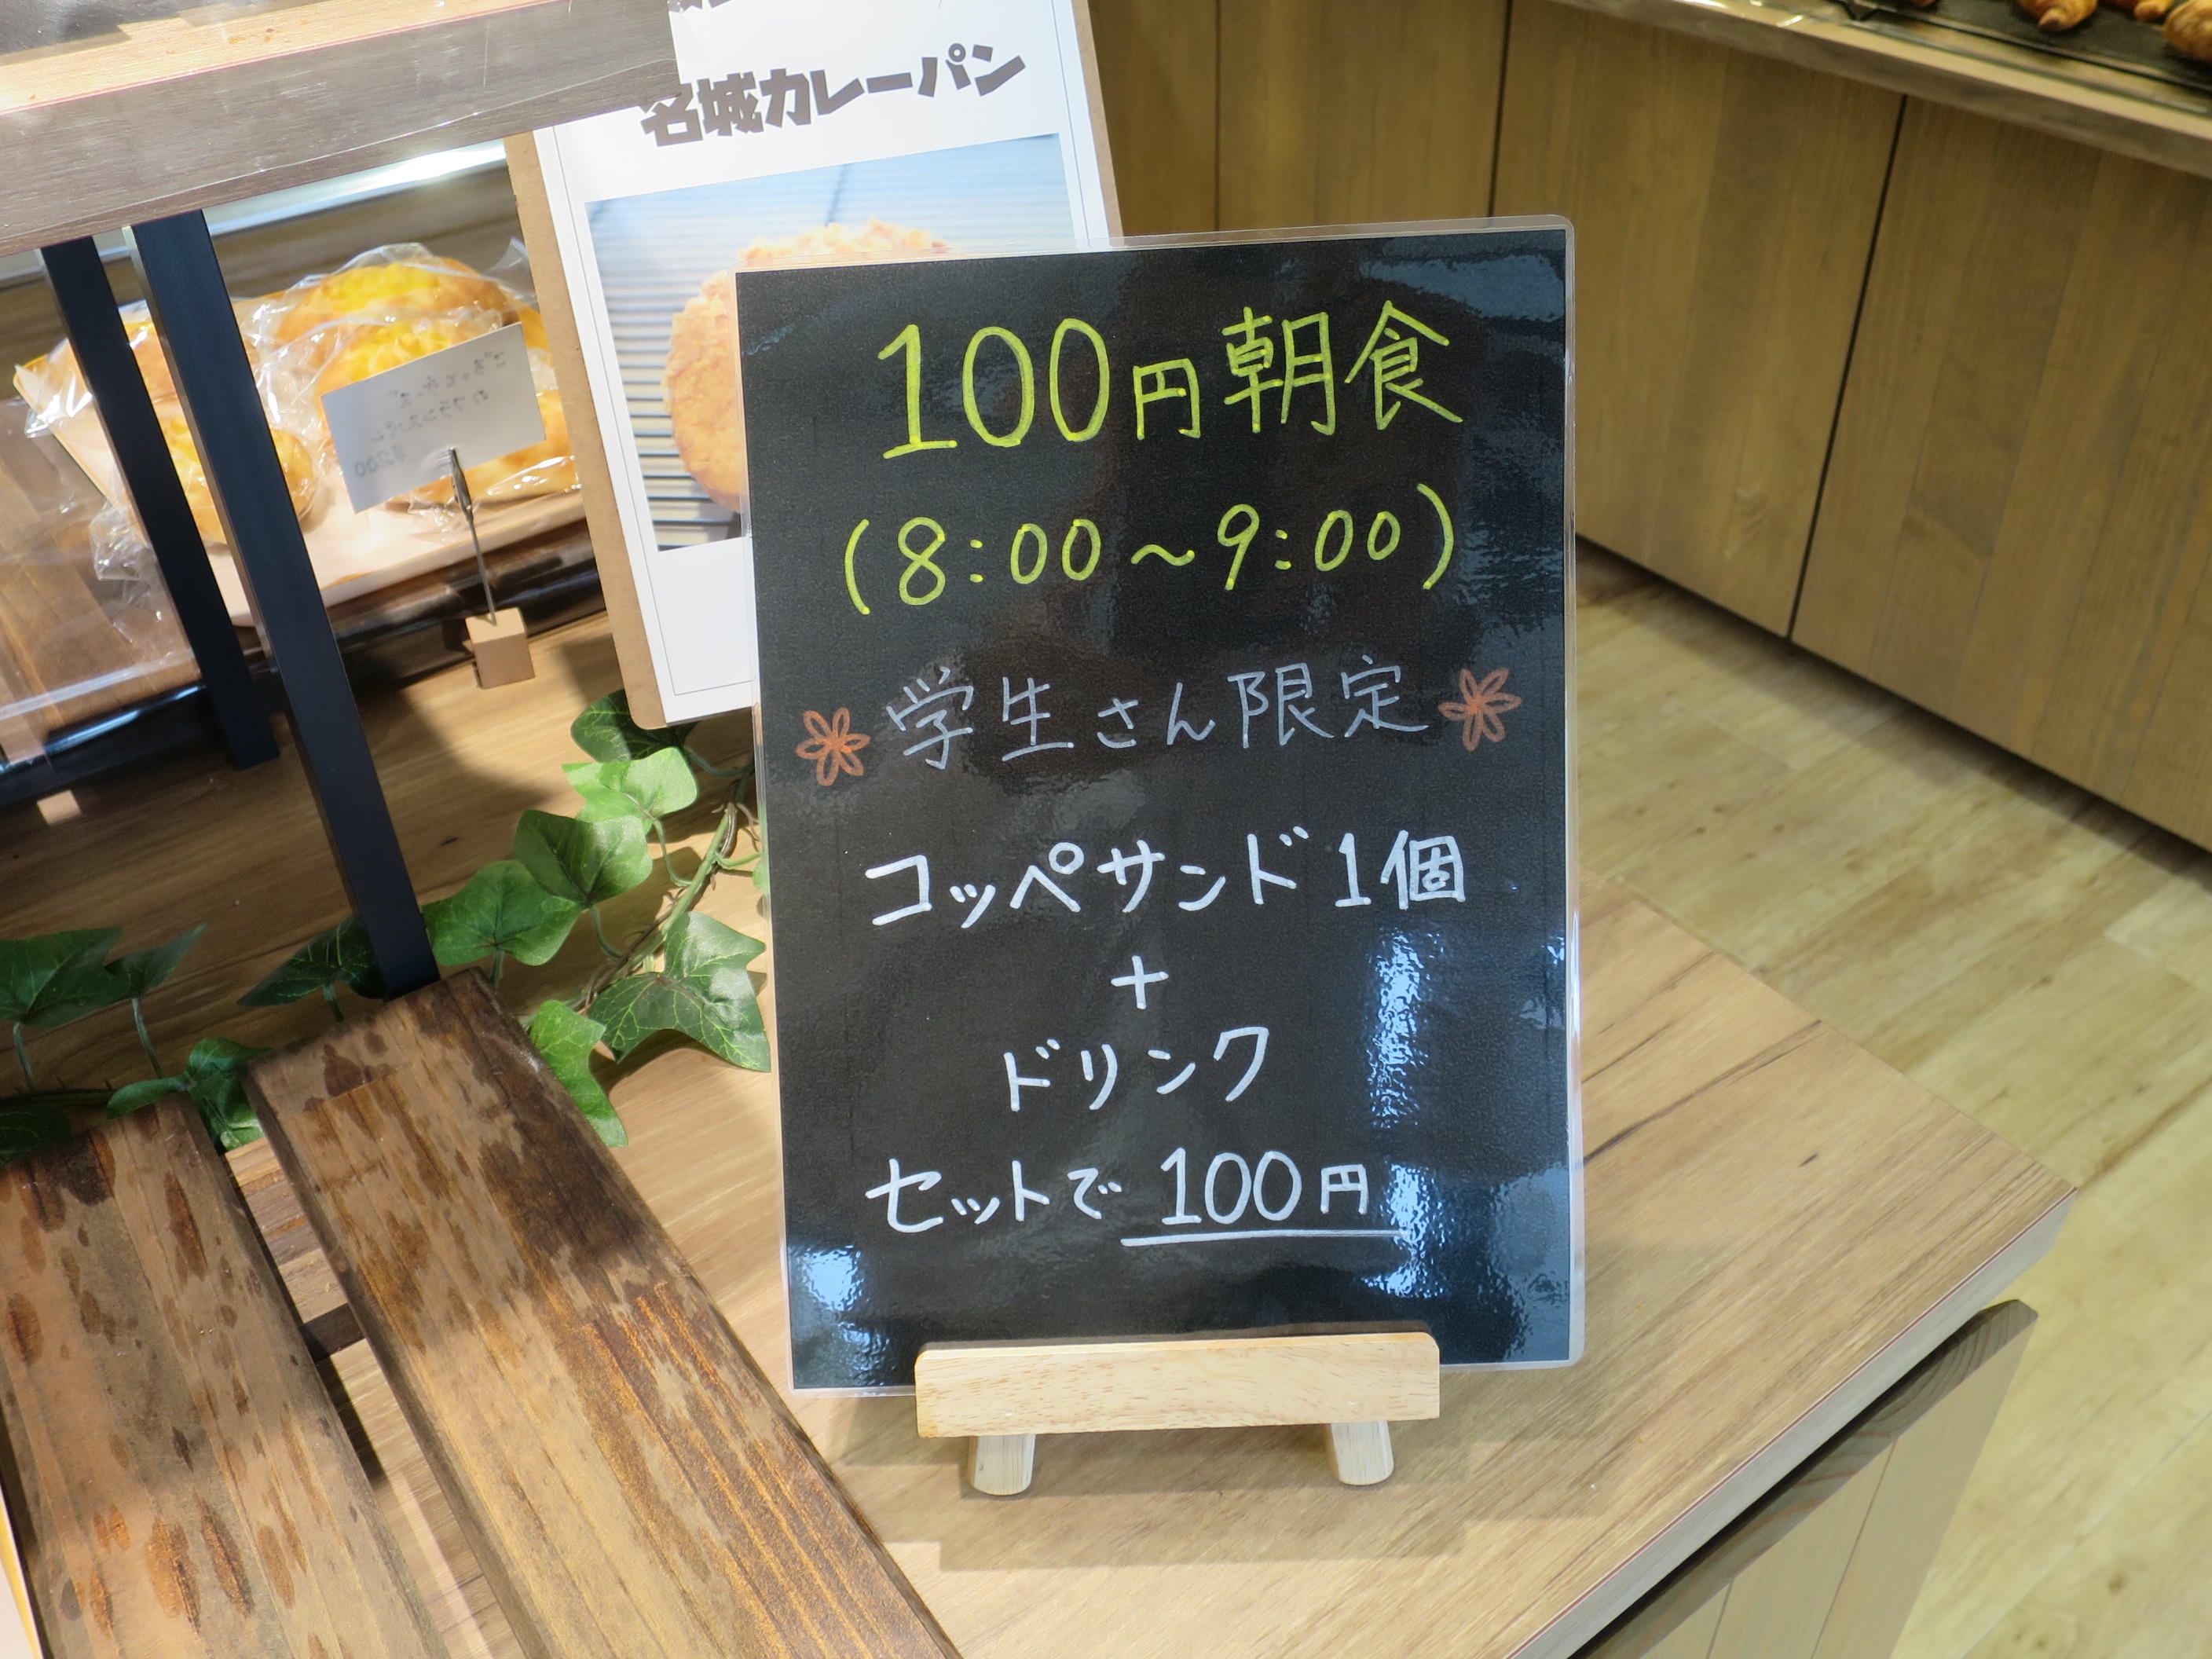 Green Bakery BOOK CAFEの100円朝食は8時から